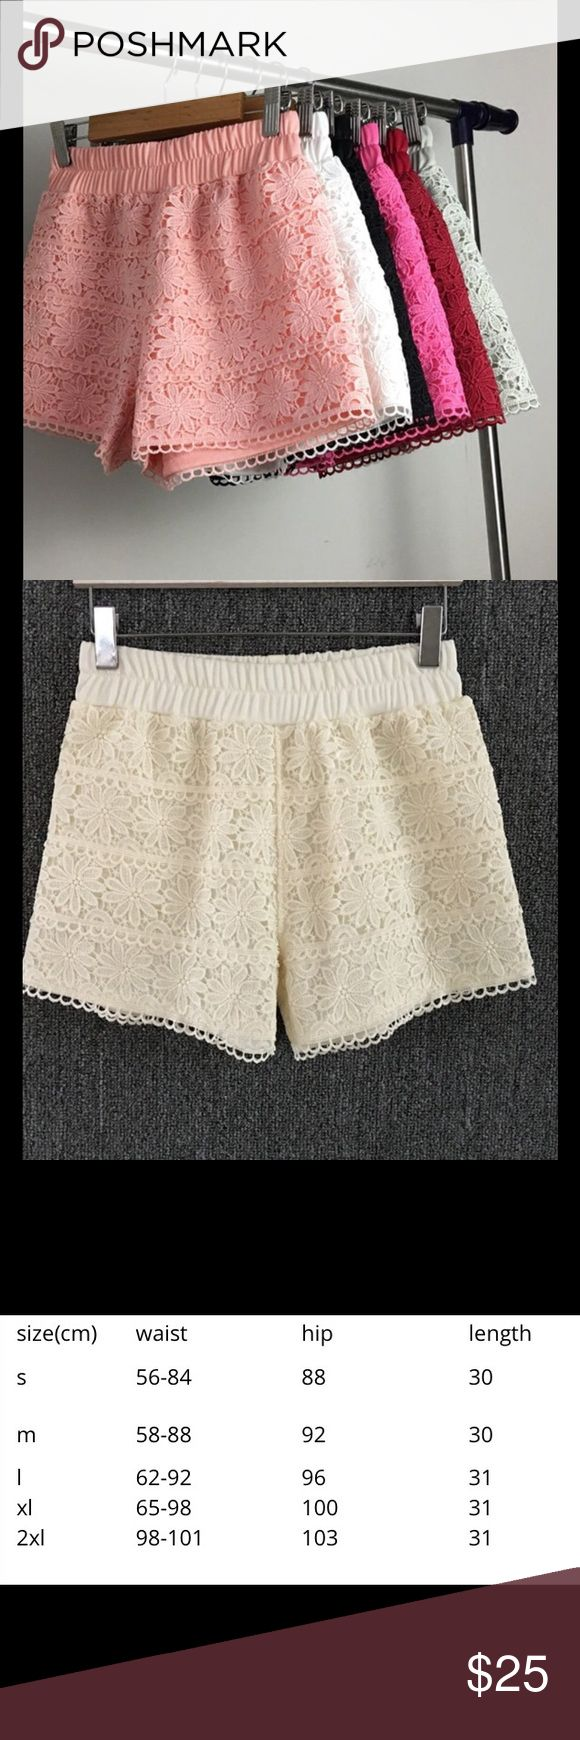 Ultra Fem Cream Lace Shorts Ultra feminine Lace shorts. Very comfortable because of the elastic waist. They are great quality. *****Please allow 14 days for delivery***** Nikki's Boutique Shorts